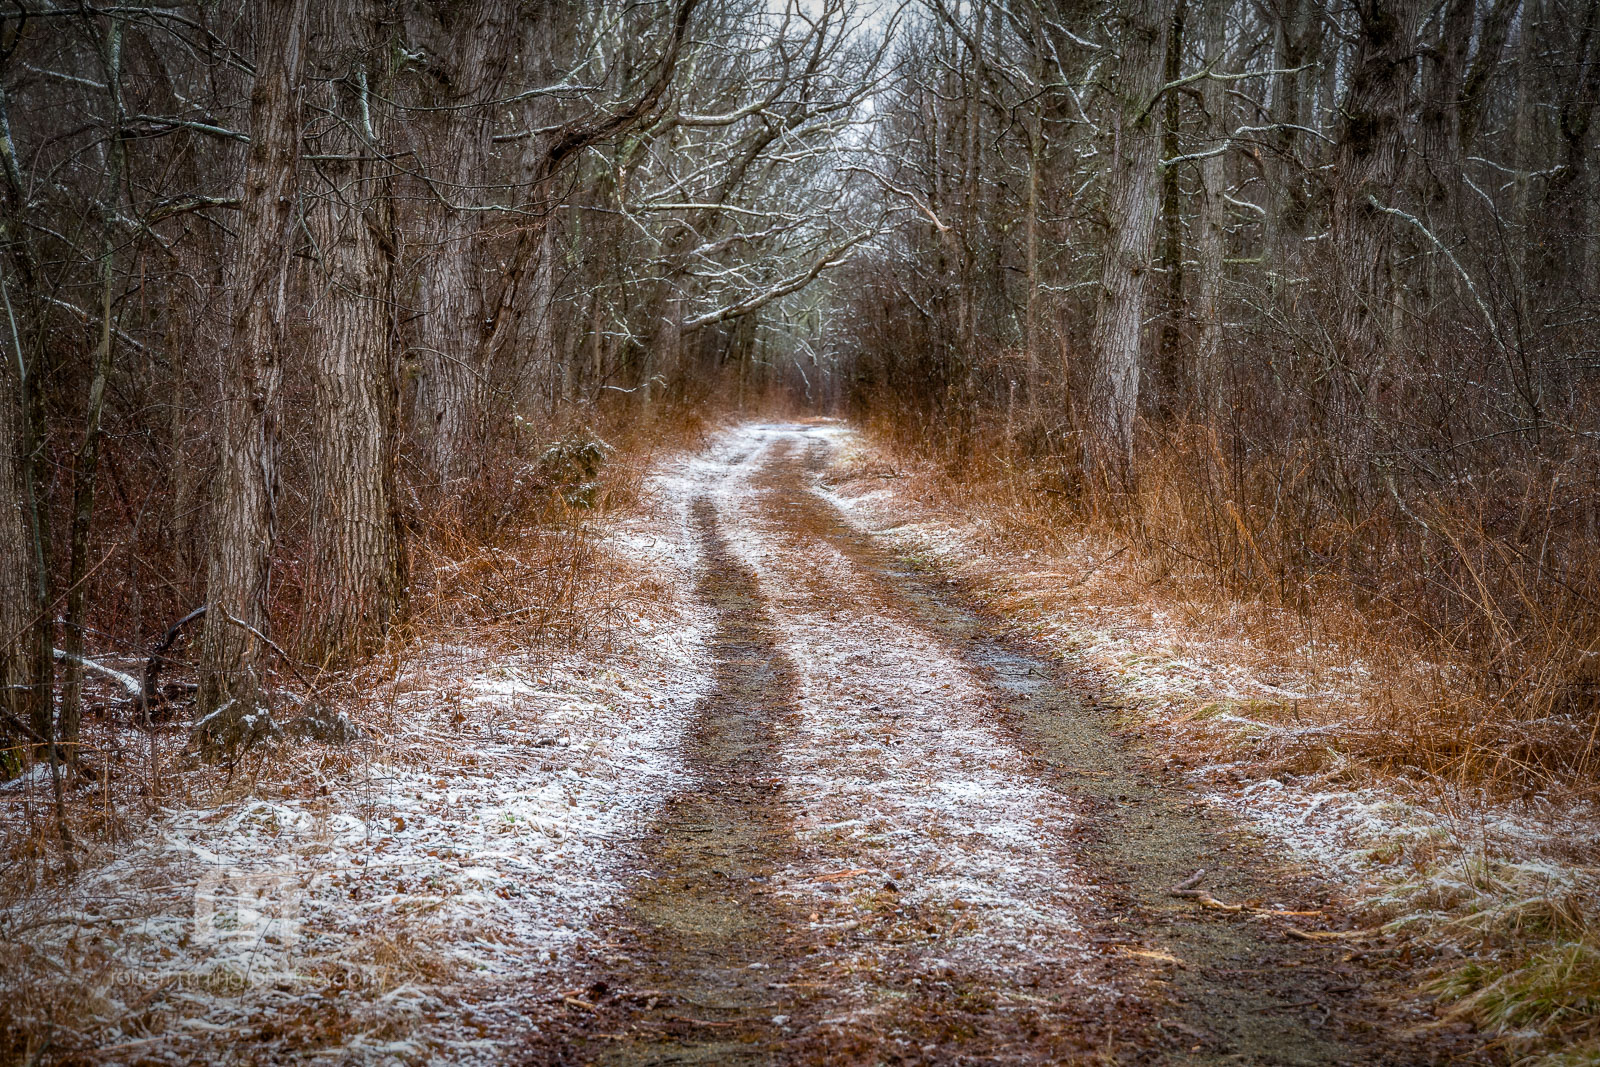 Snow,dirt road,down the road,new england,scenic, photo